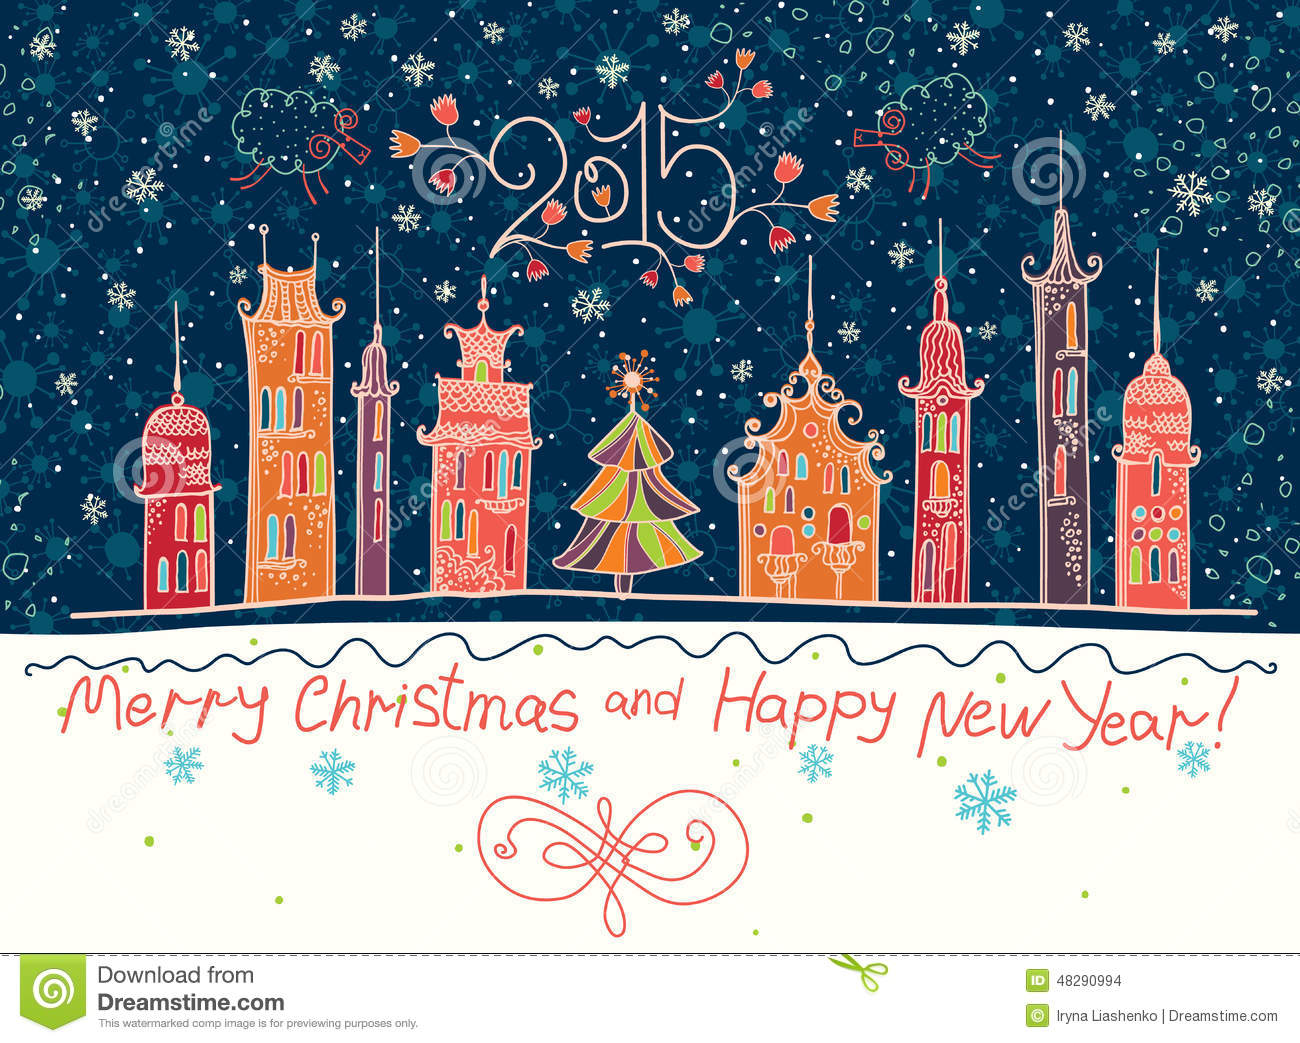 50 Beautiful Merry Christmas And Happy New Year Pictures: Beautiful Holiday In Cartoon Town. Stock Illustration